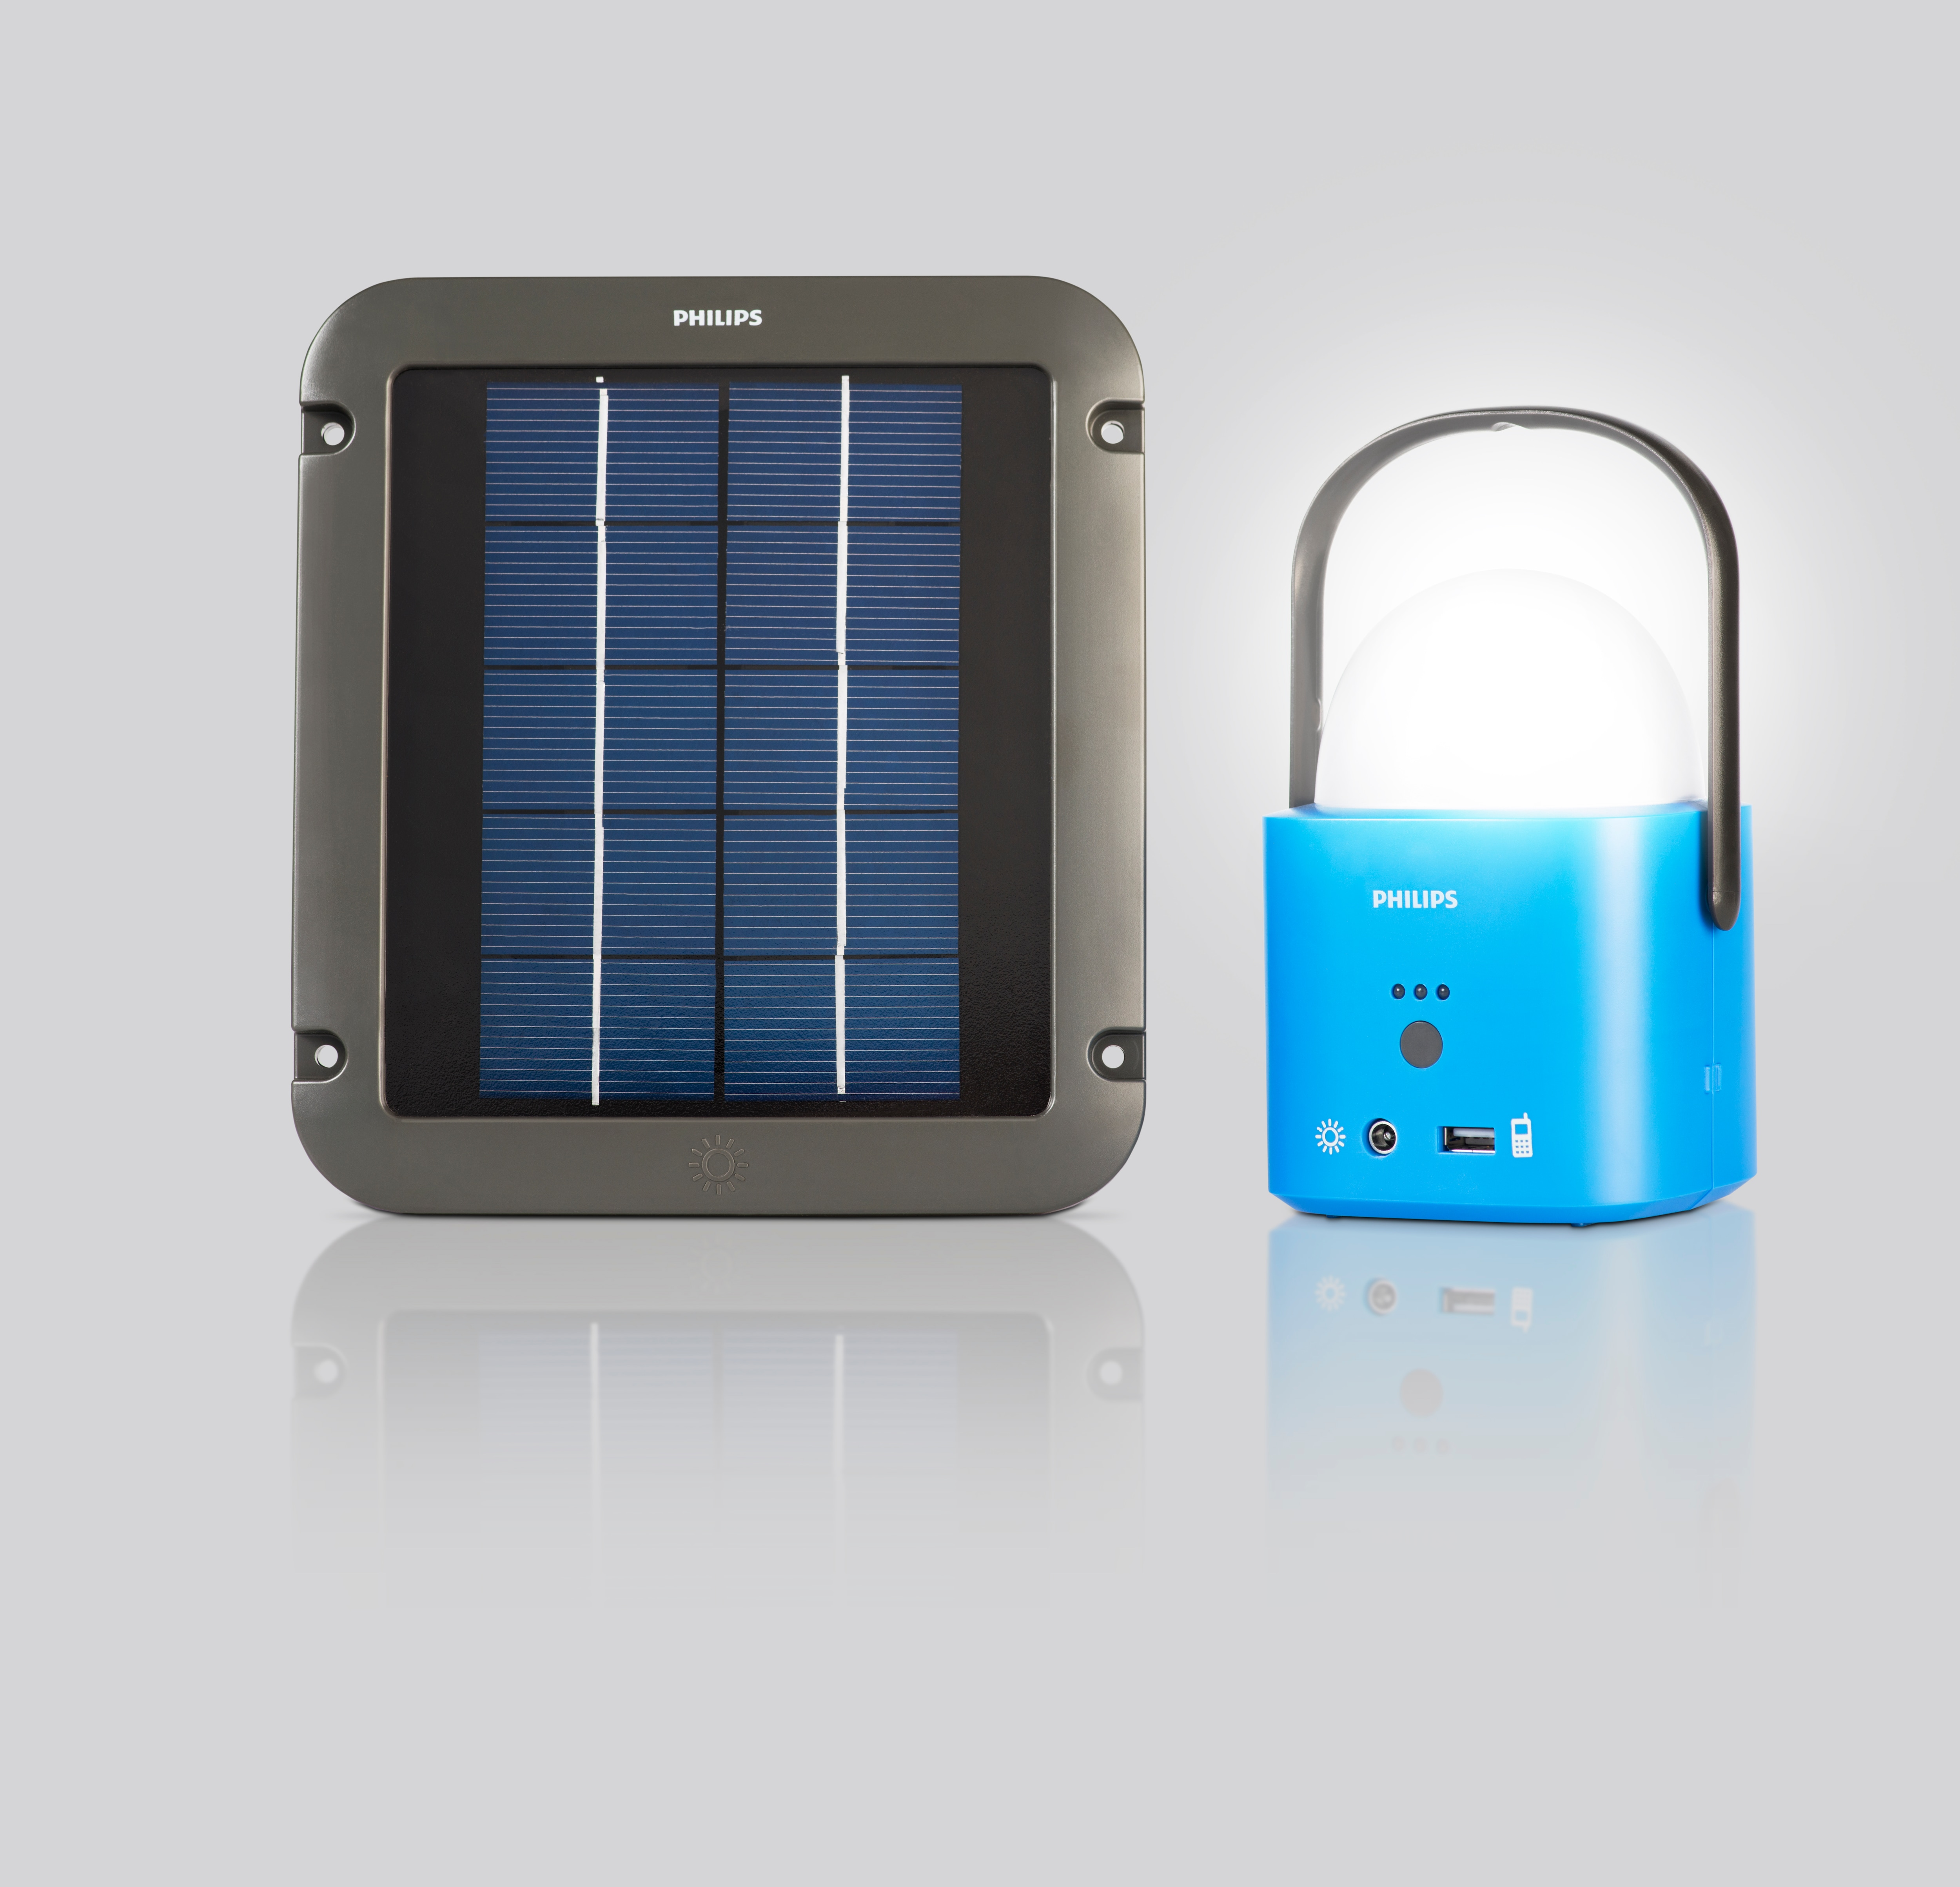 Solar Powered Led Luminaires From Philips Can Brighten The